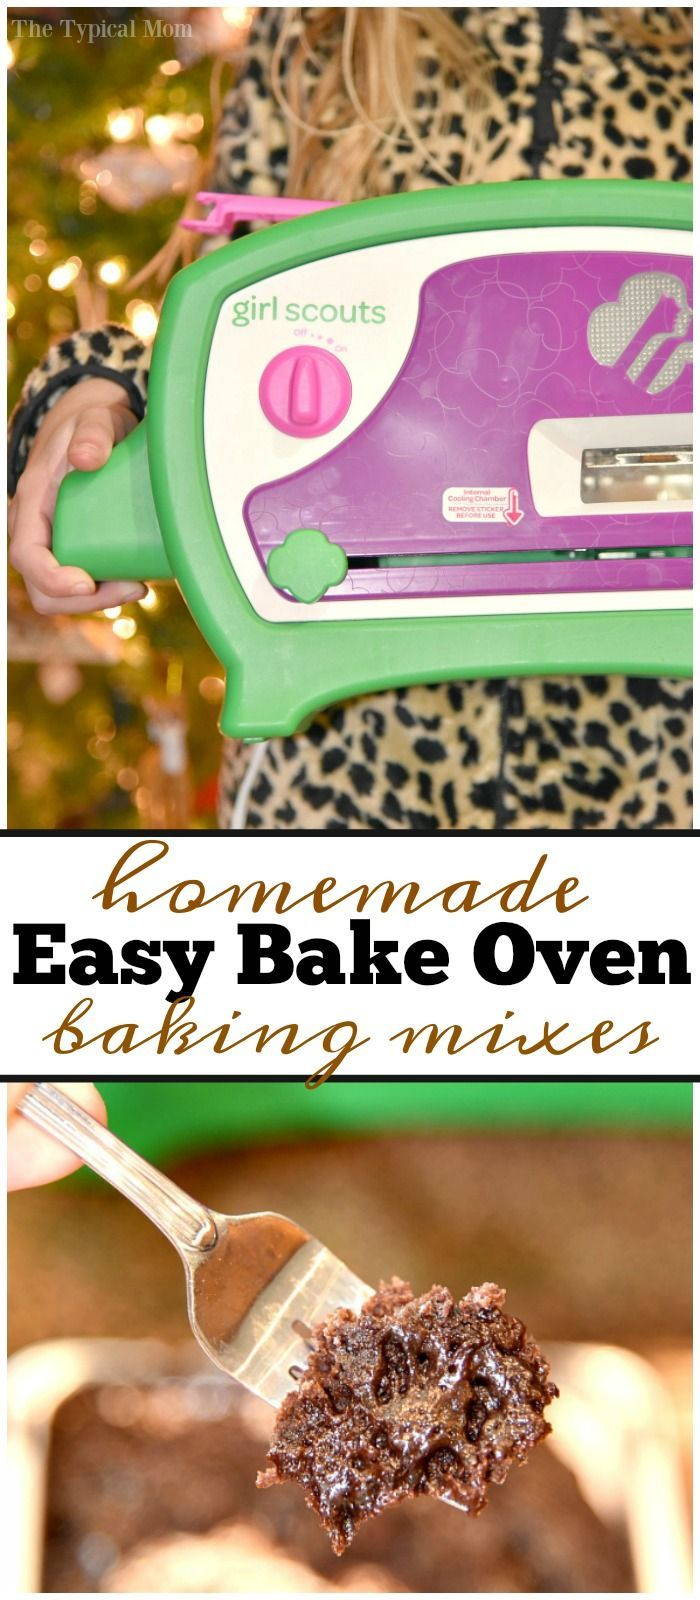 Easy bake oven recipes from mixes